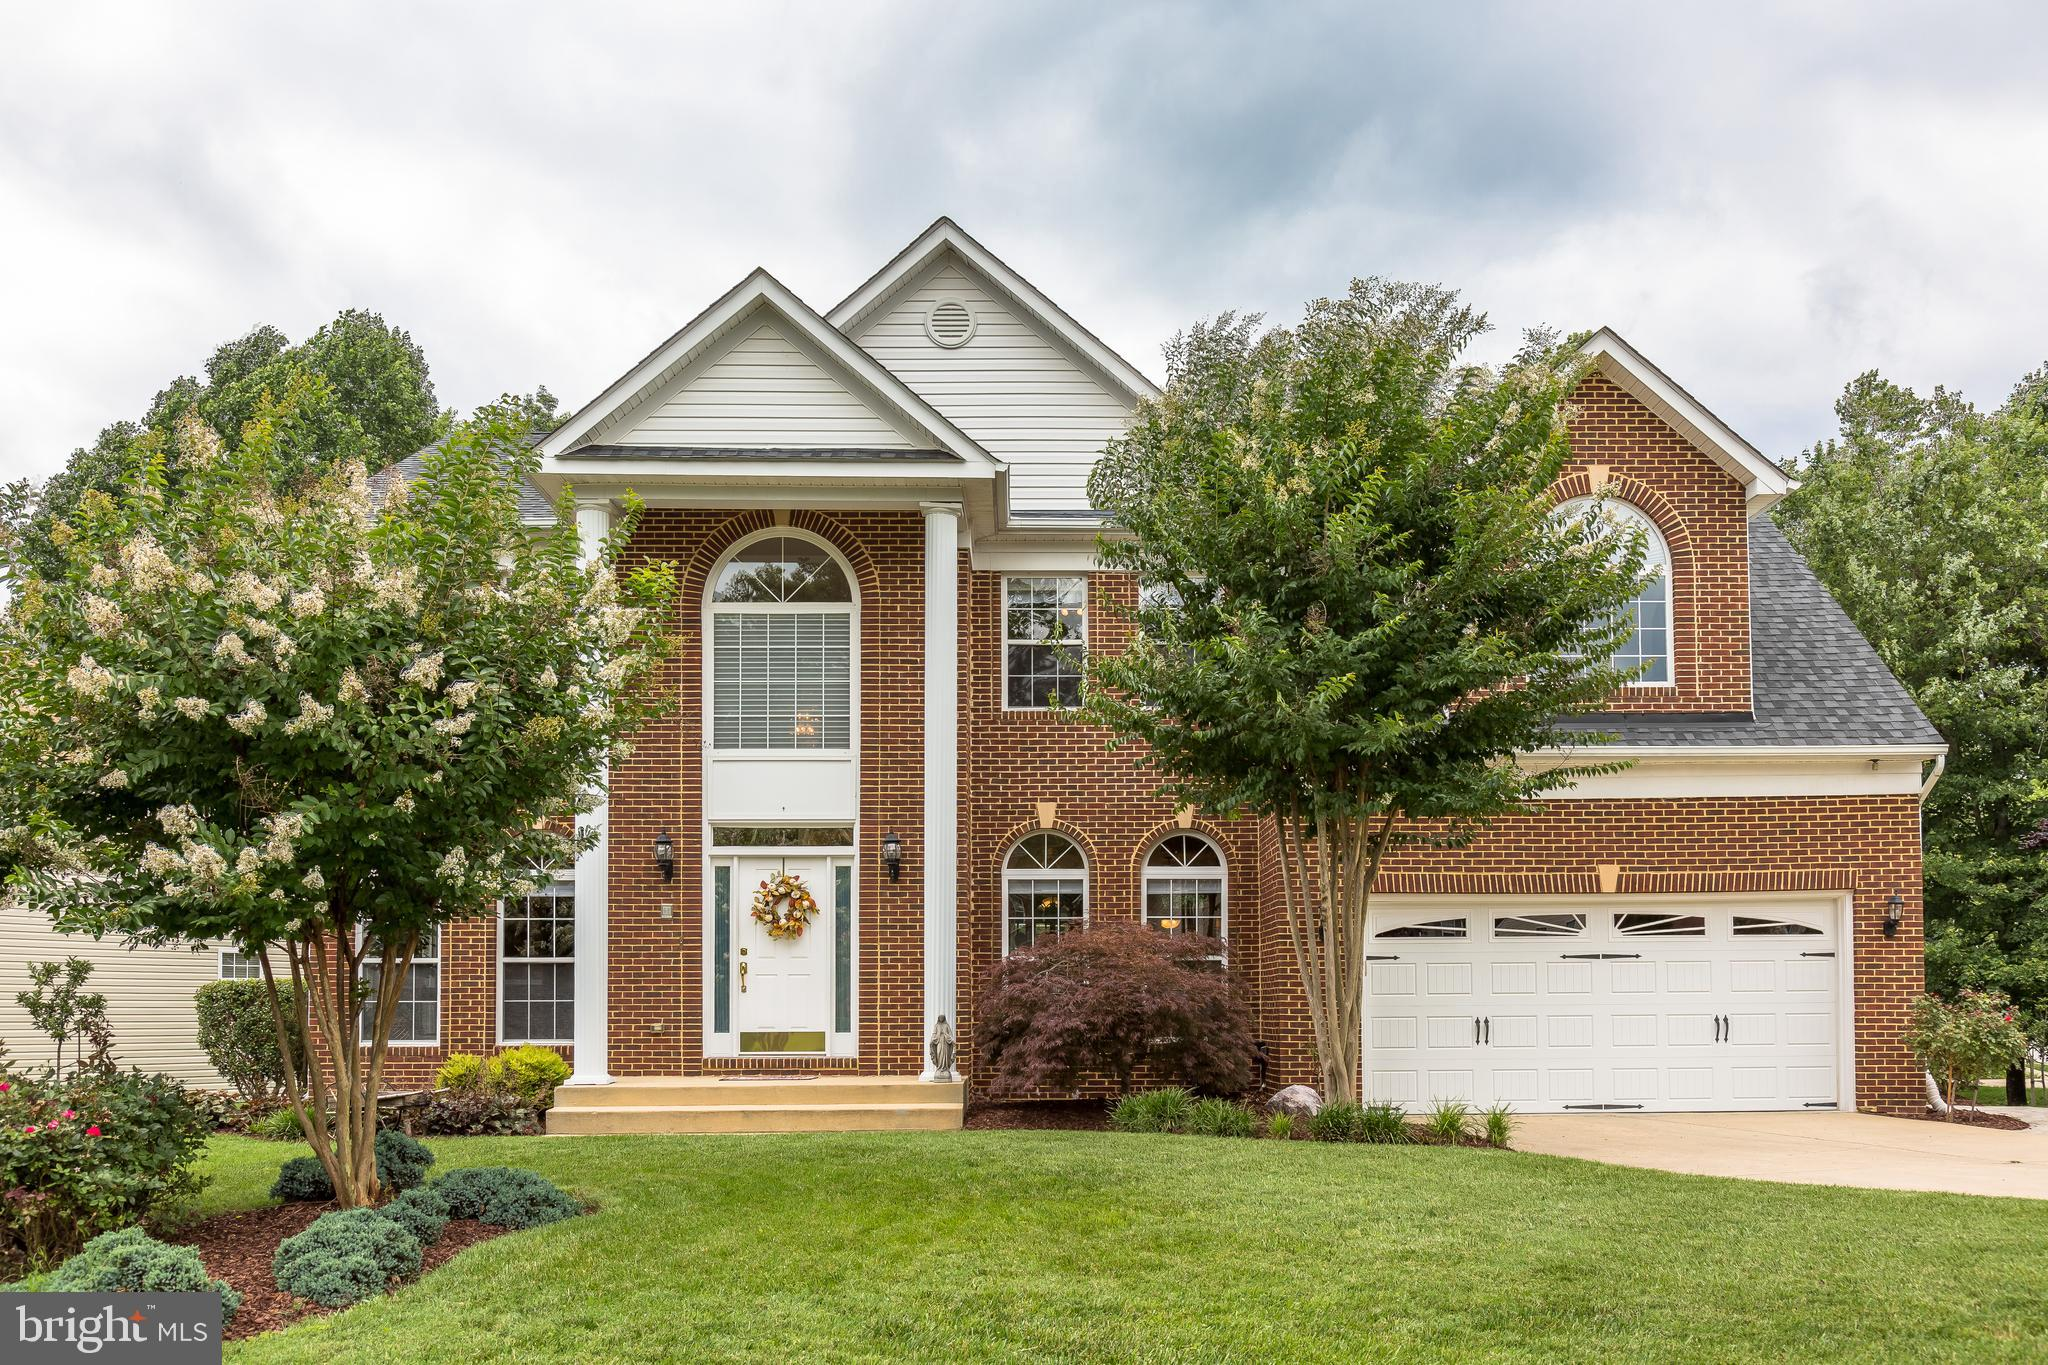 Once in a lifetime opportunity to own one of the largest homes in the subdivision. This home offers